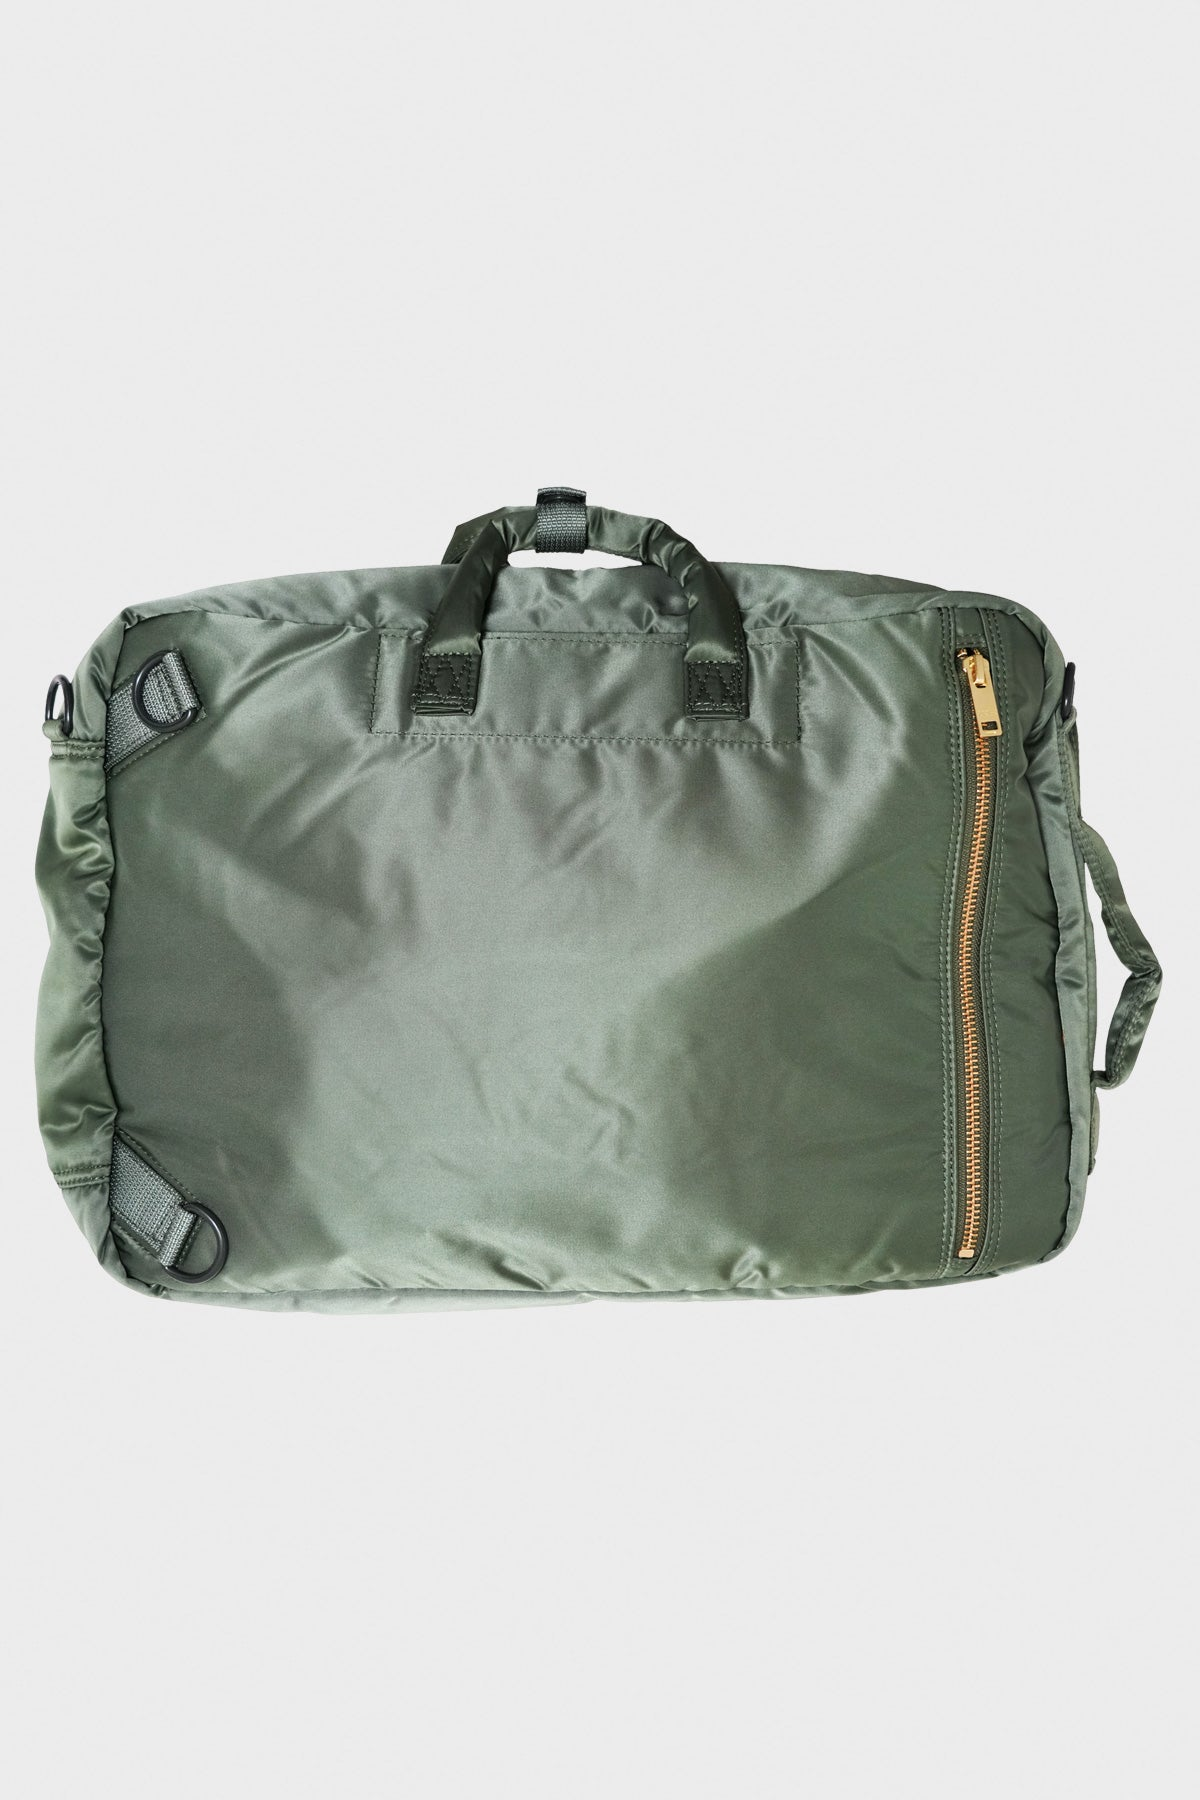 Porter Yoshida and Co - 3 Way Brief Case - Sage Green - Canoe Club